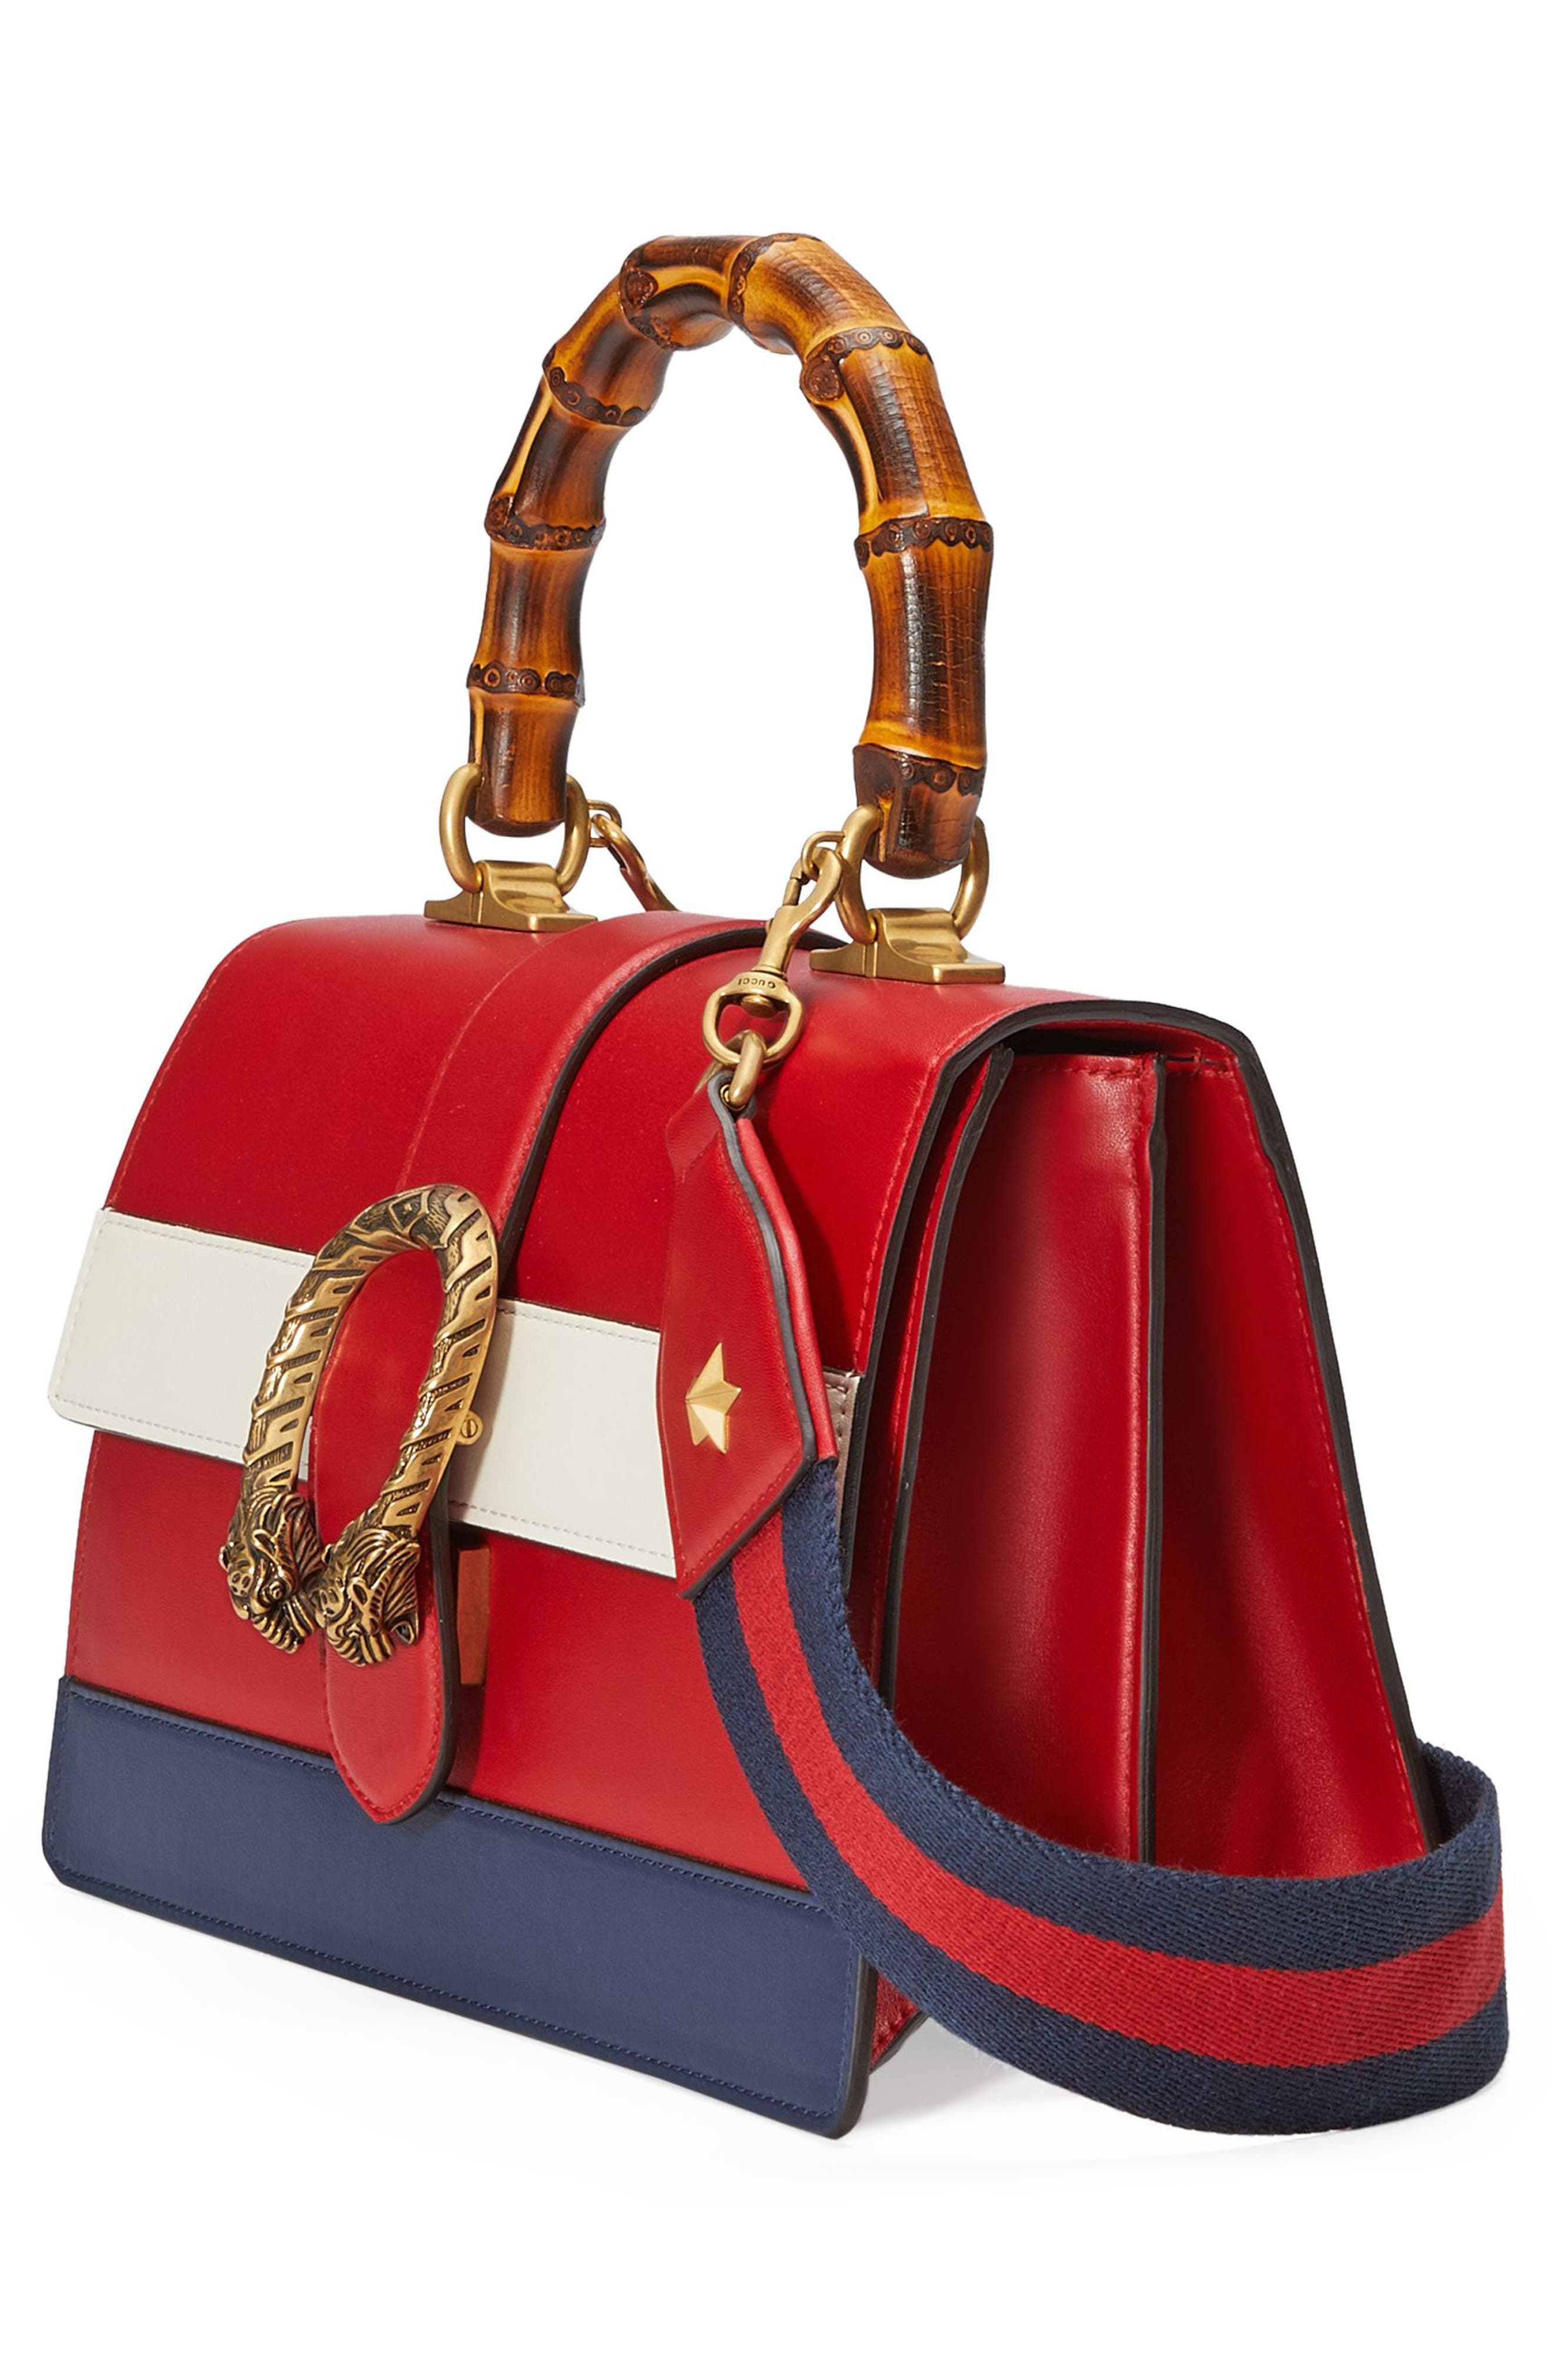 Small Dionysus Top Handle Leather Shoulder Bag,                             Alternate thumbnail 4, color,                             Red/ White/ Blue